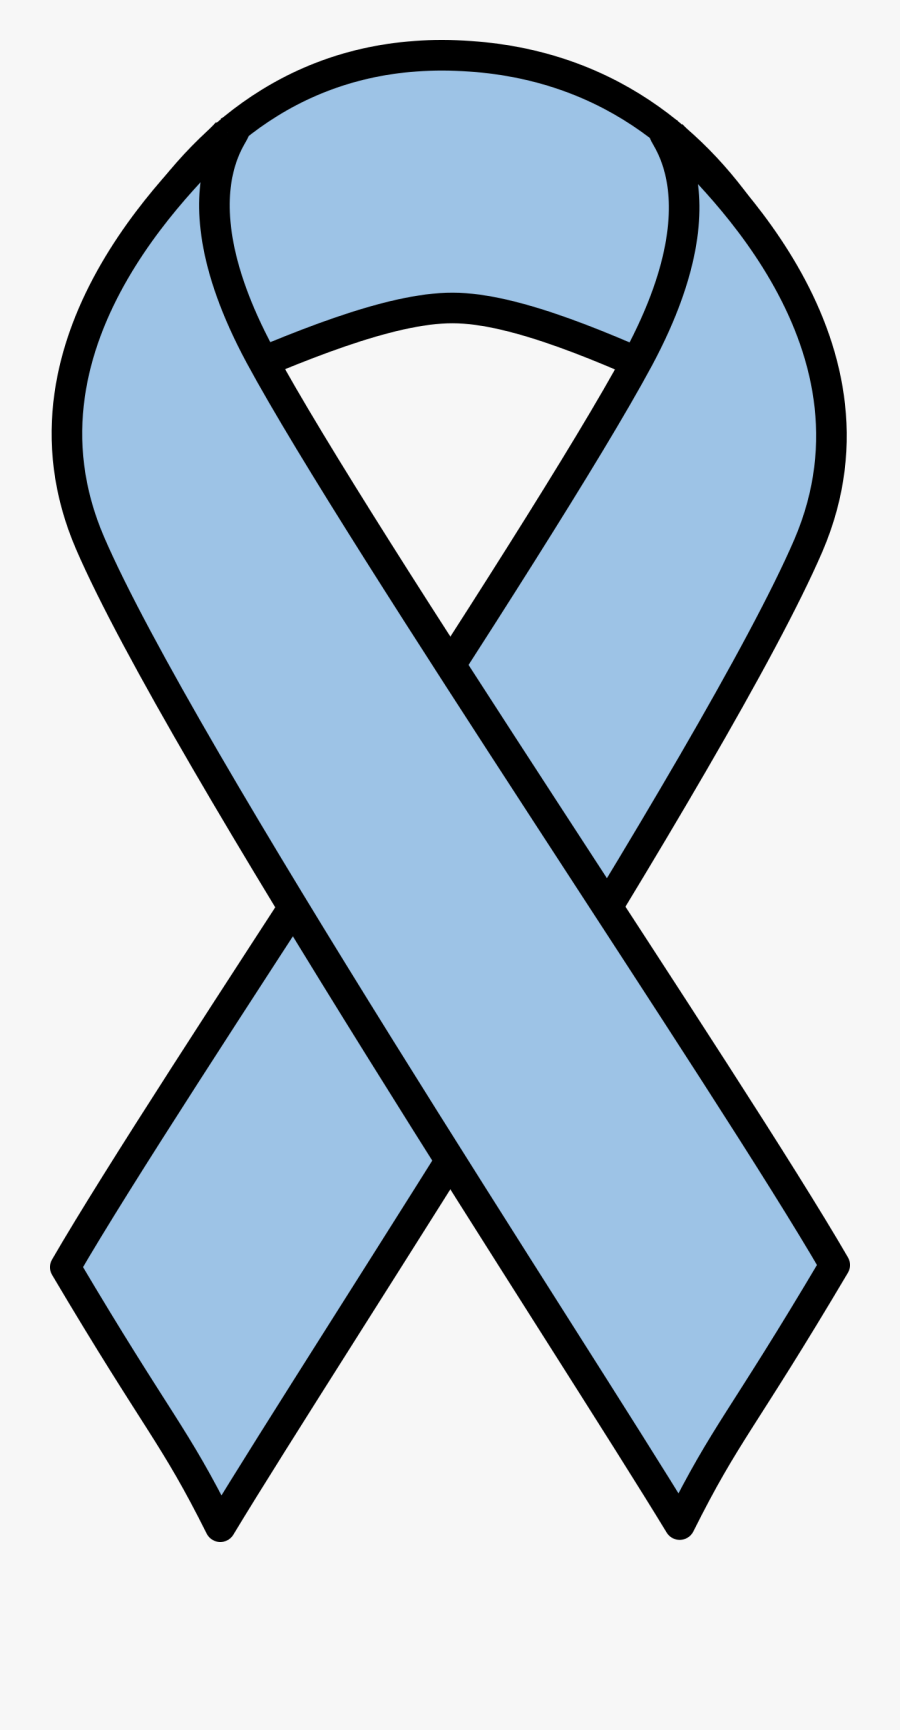 Light Blue Prostate Cancer Ribbon - Clip Art Breast Cancer Ribbon, Transparent Clipart